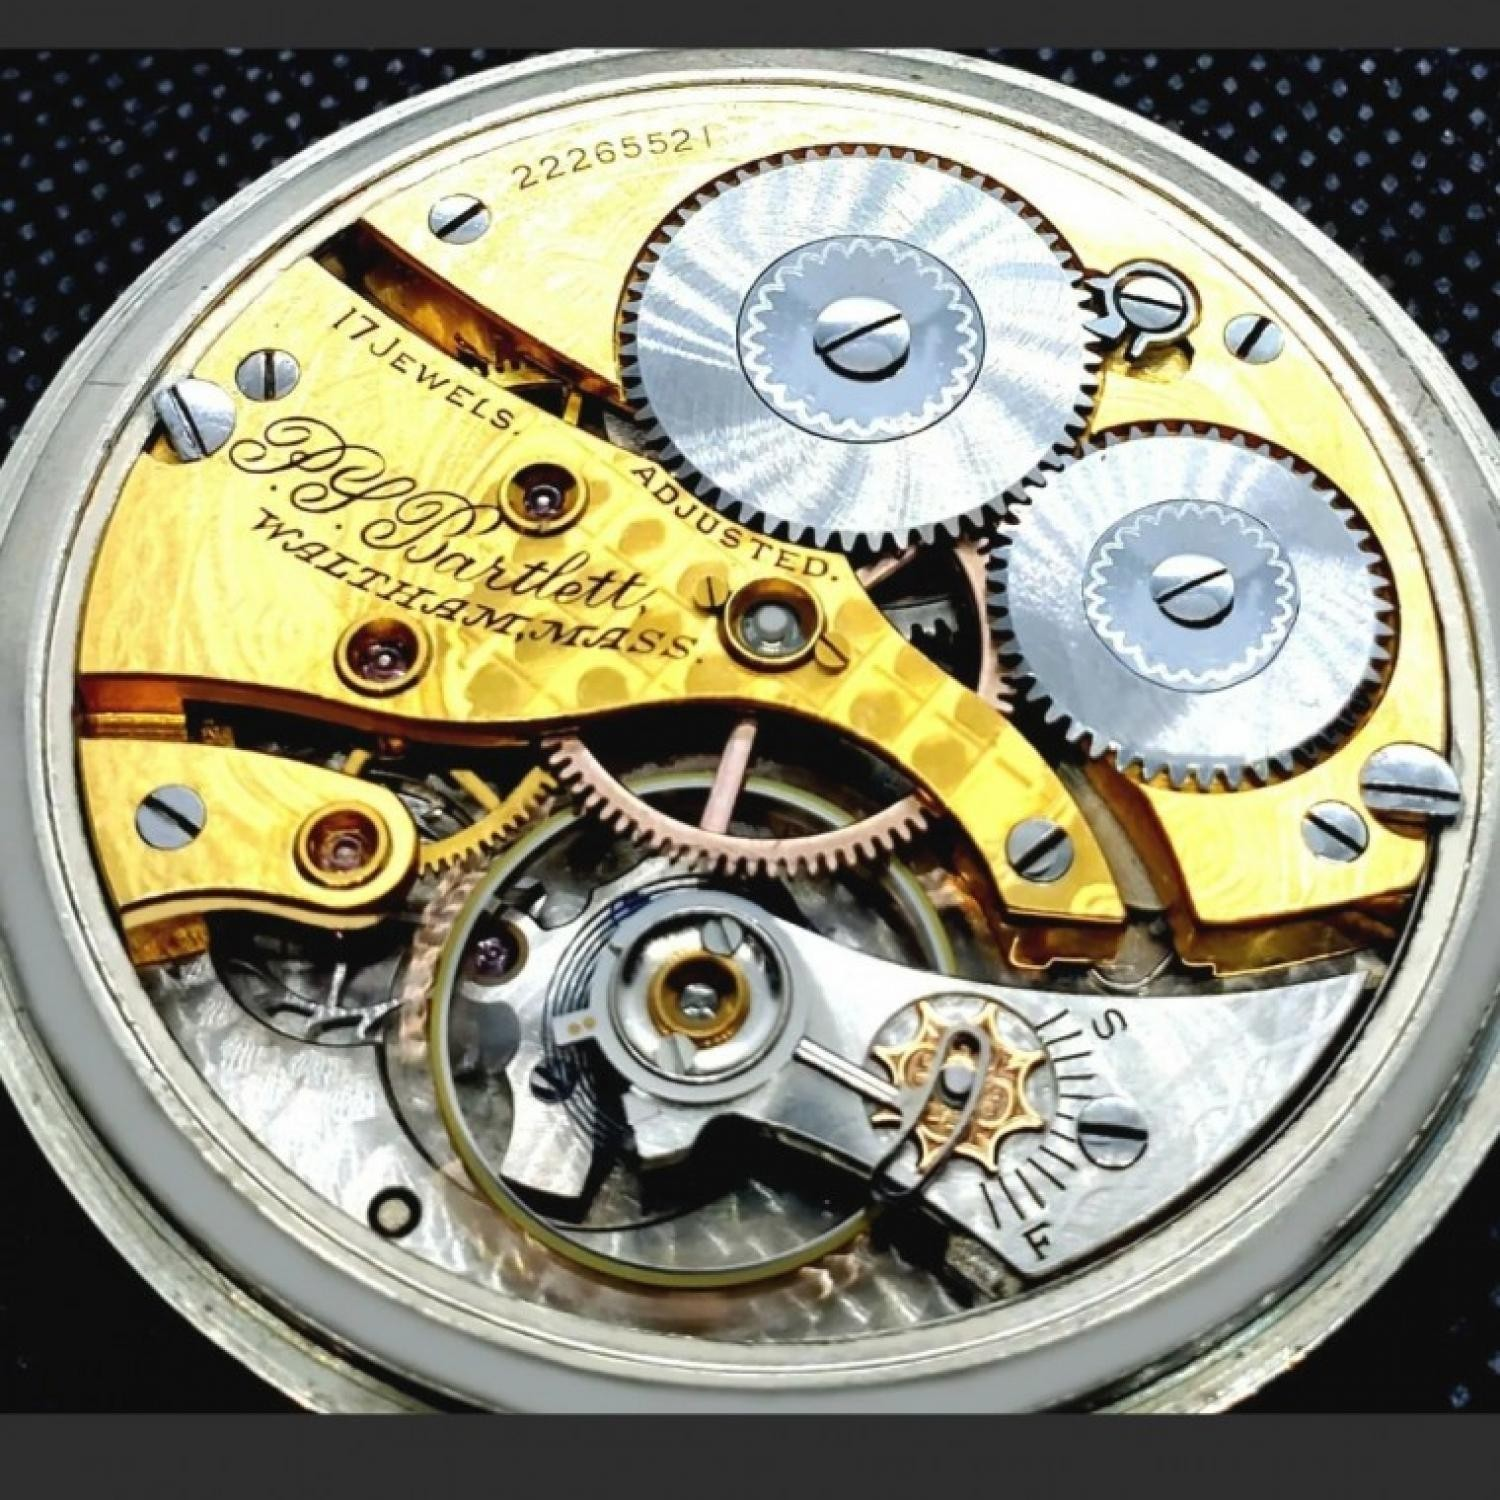 Image of American Watch Co. P.S Bartlett #22265521 Movement